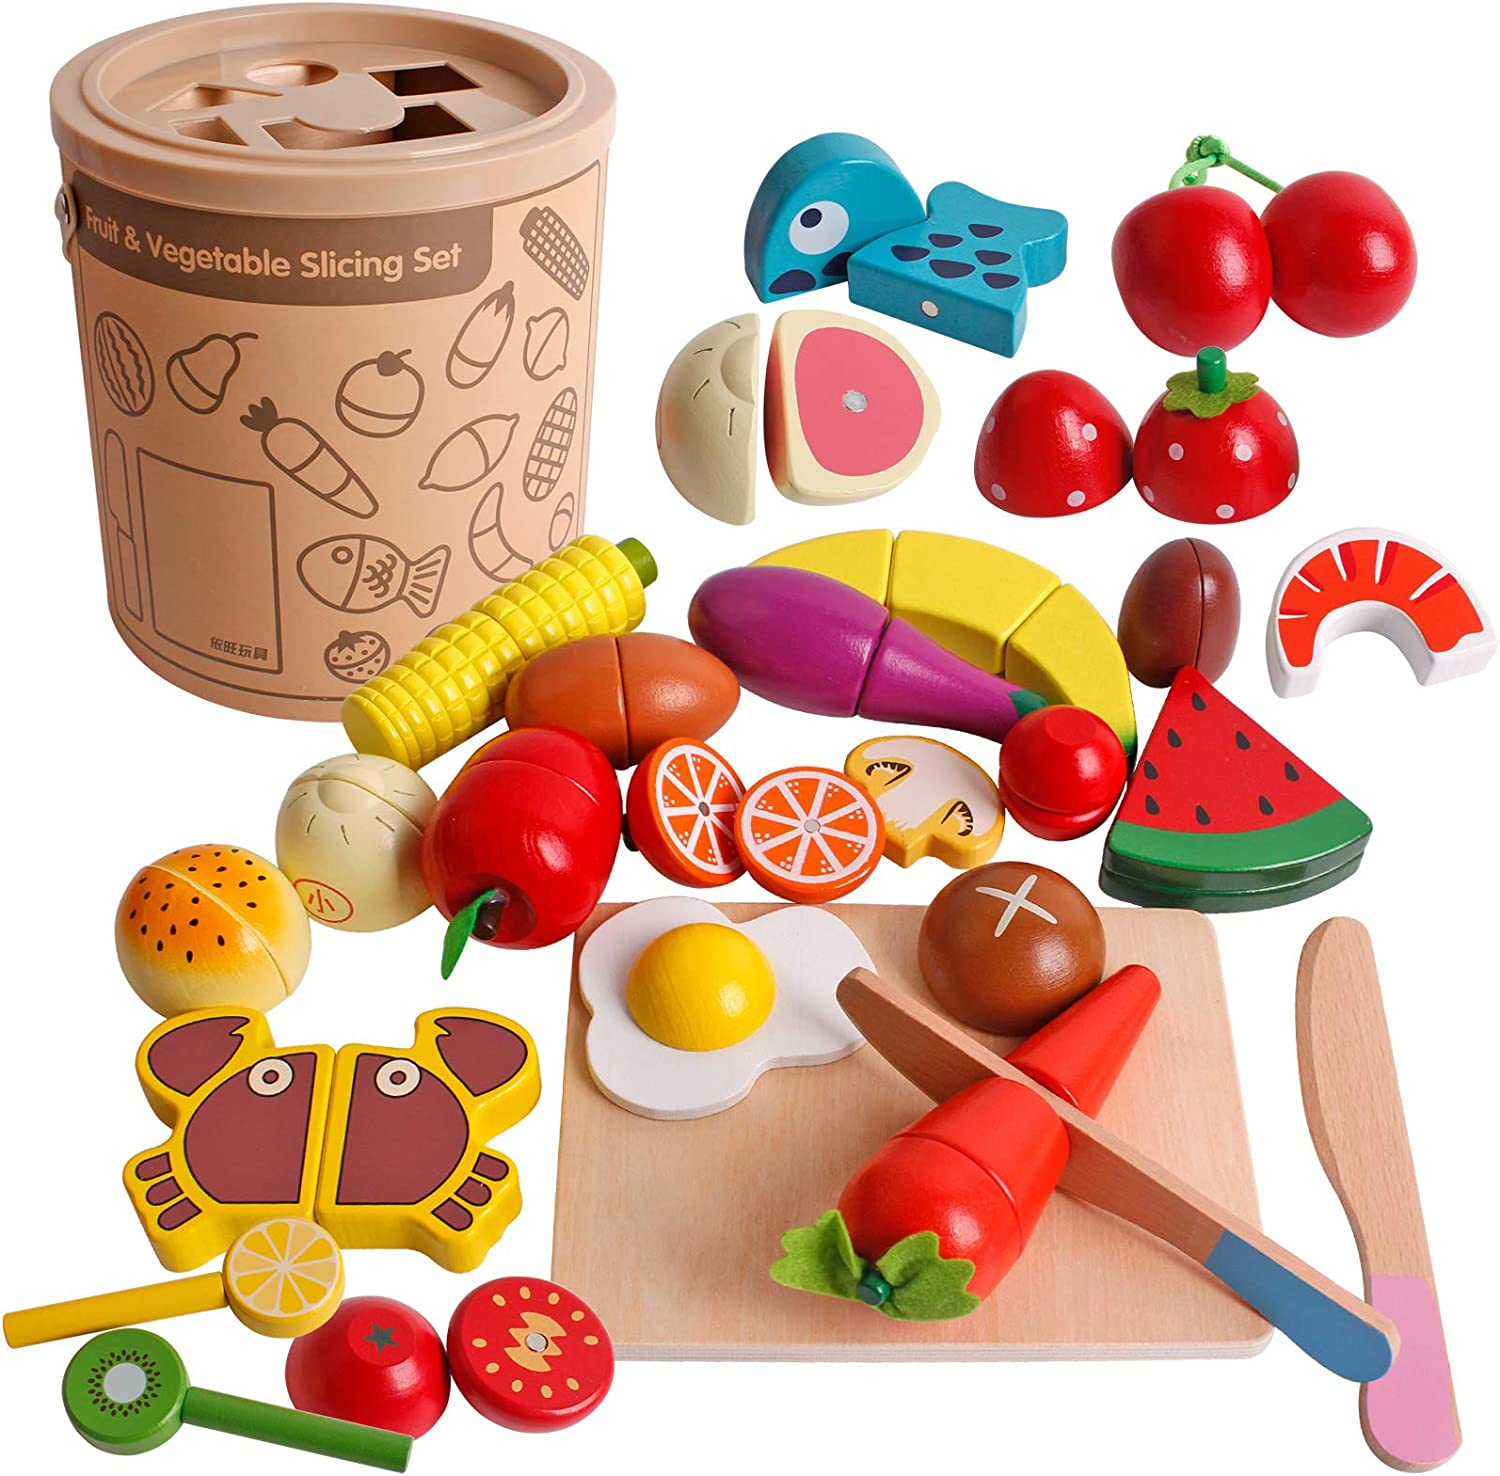 Play Wooden Food Cooking Toy, Cutting Fruit Vegetables Pretend Play Kitchen Set Magnetic Wood Fruit Early Educational Development, Learning Gift for 3, 4, 5, 6 Year Old Kids Toddlers Boys & Girls